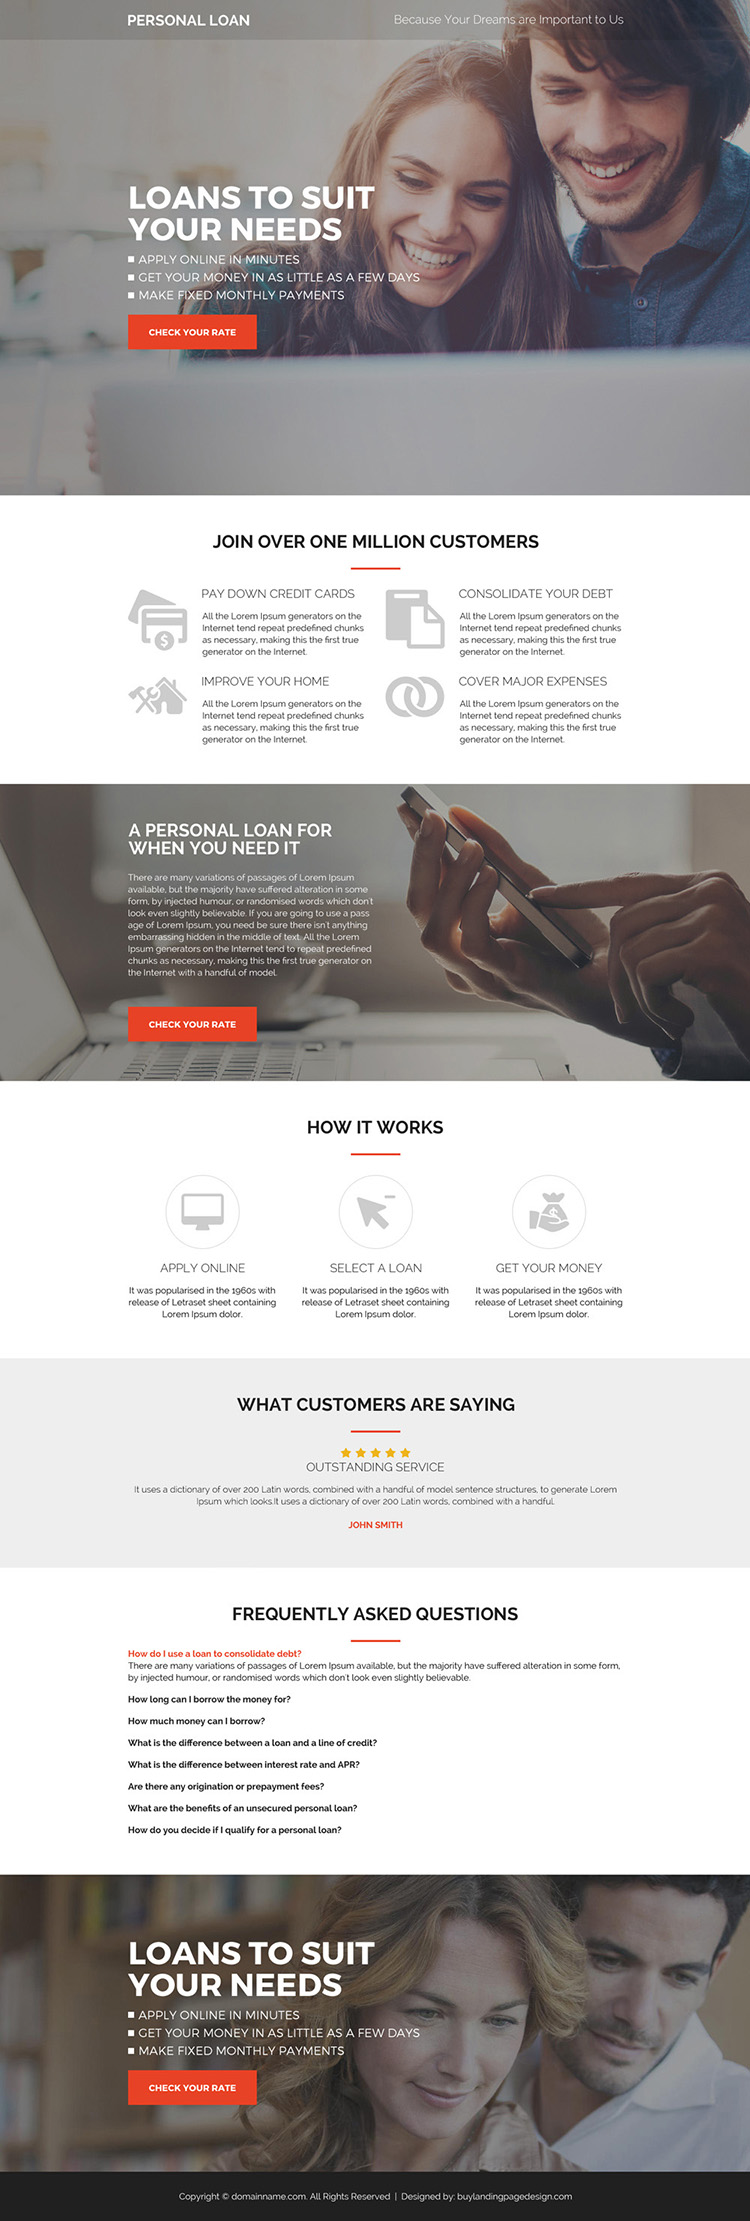 personal loans pay per click landing page design